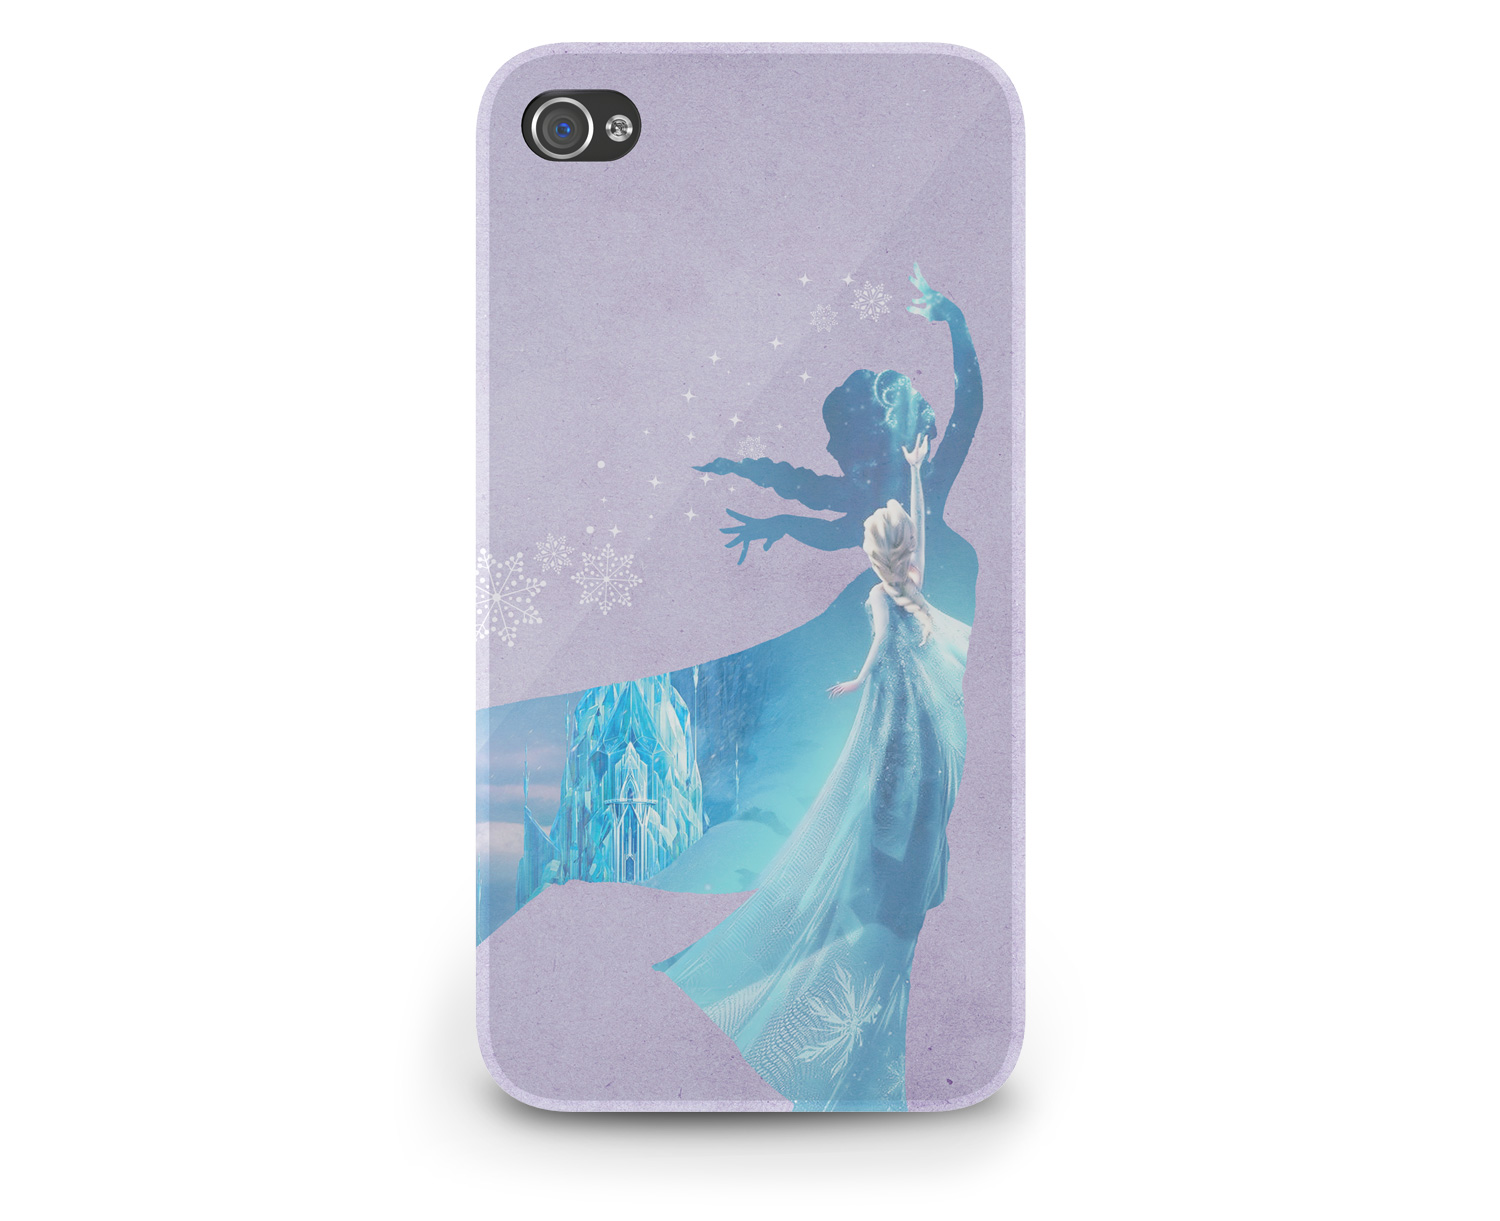 Disney Princess Silhouette Disney Princess Elsa Frozen